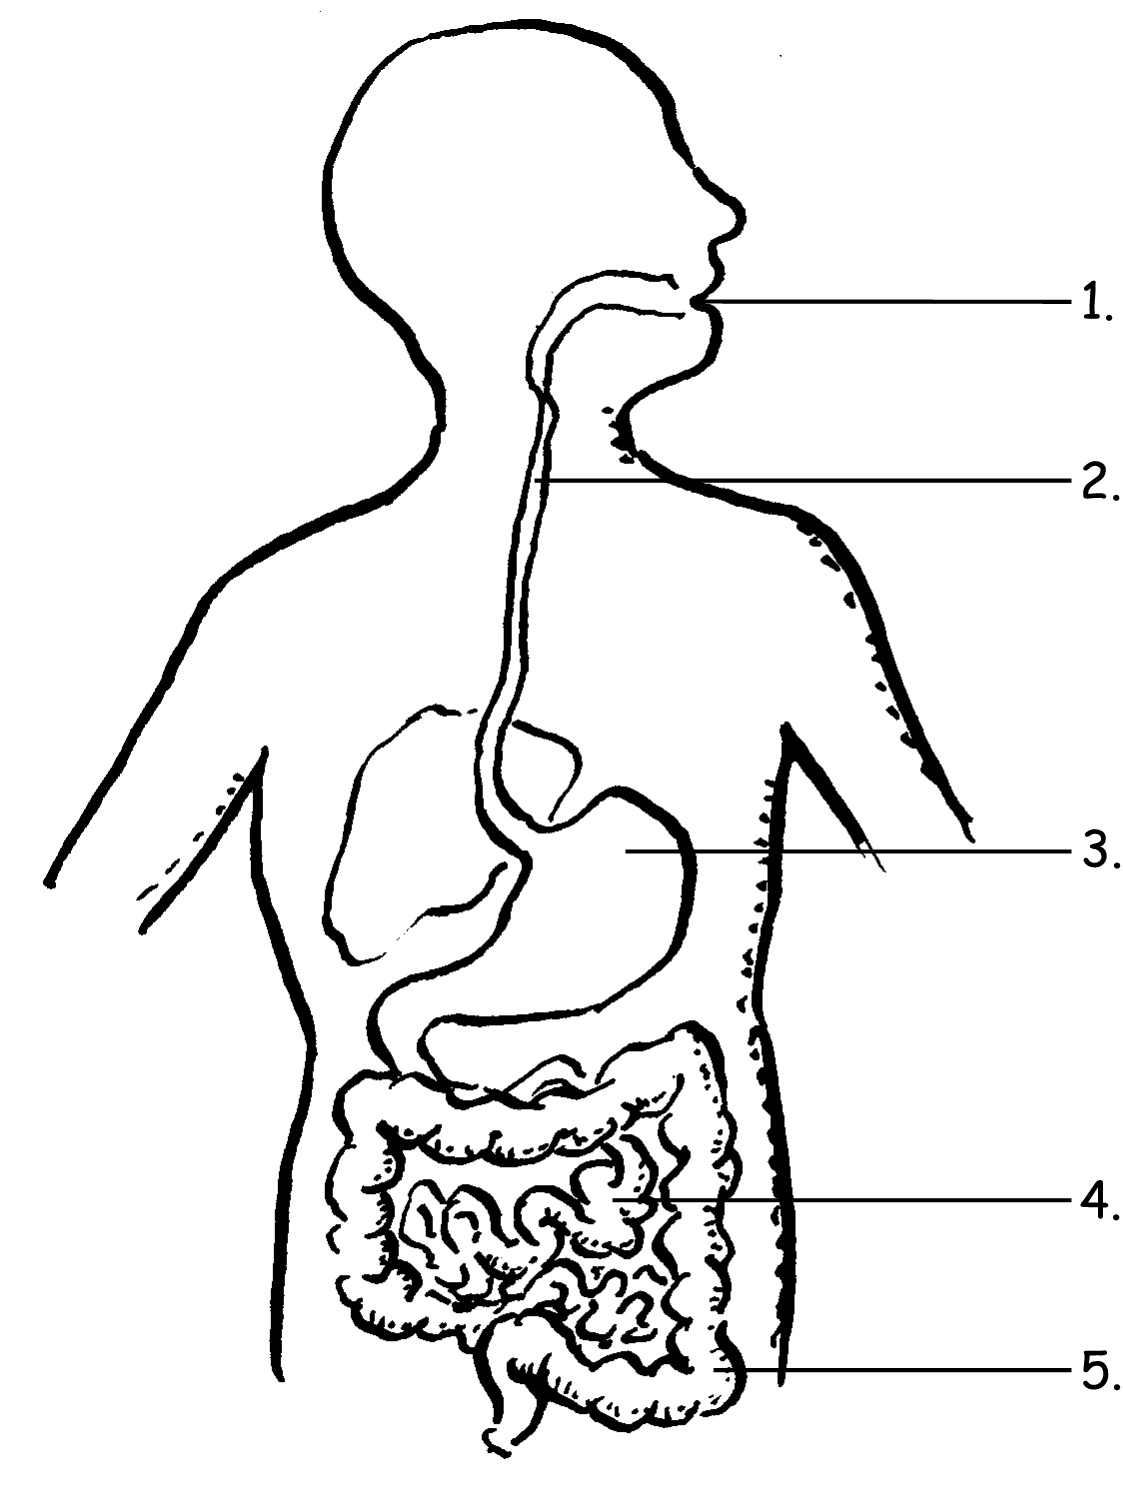 102 the digestive system lessons tes teach the digestive system natural sciences grade 4 openstax cnx ccuart Image collections